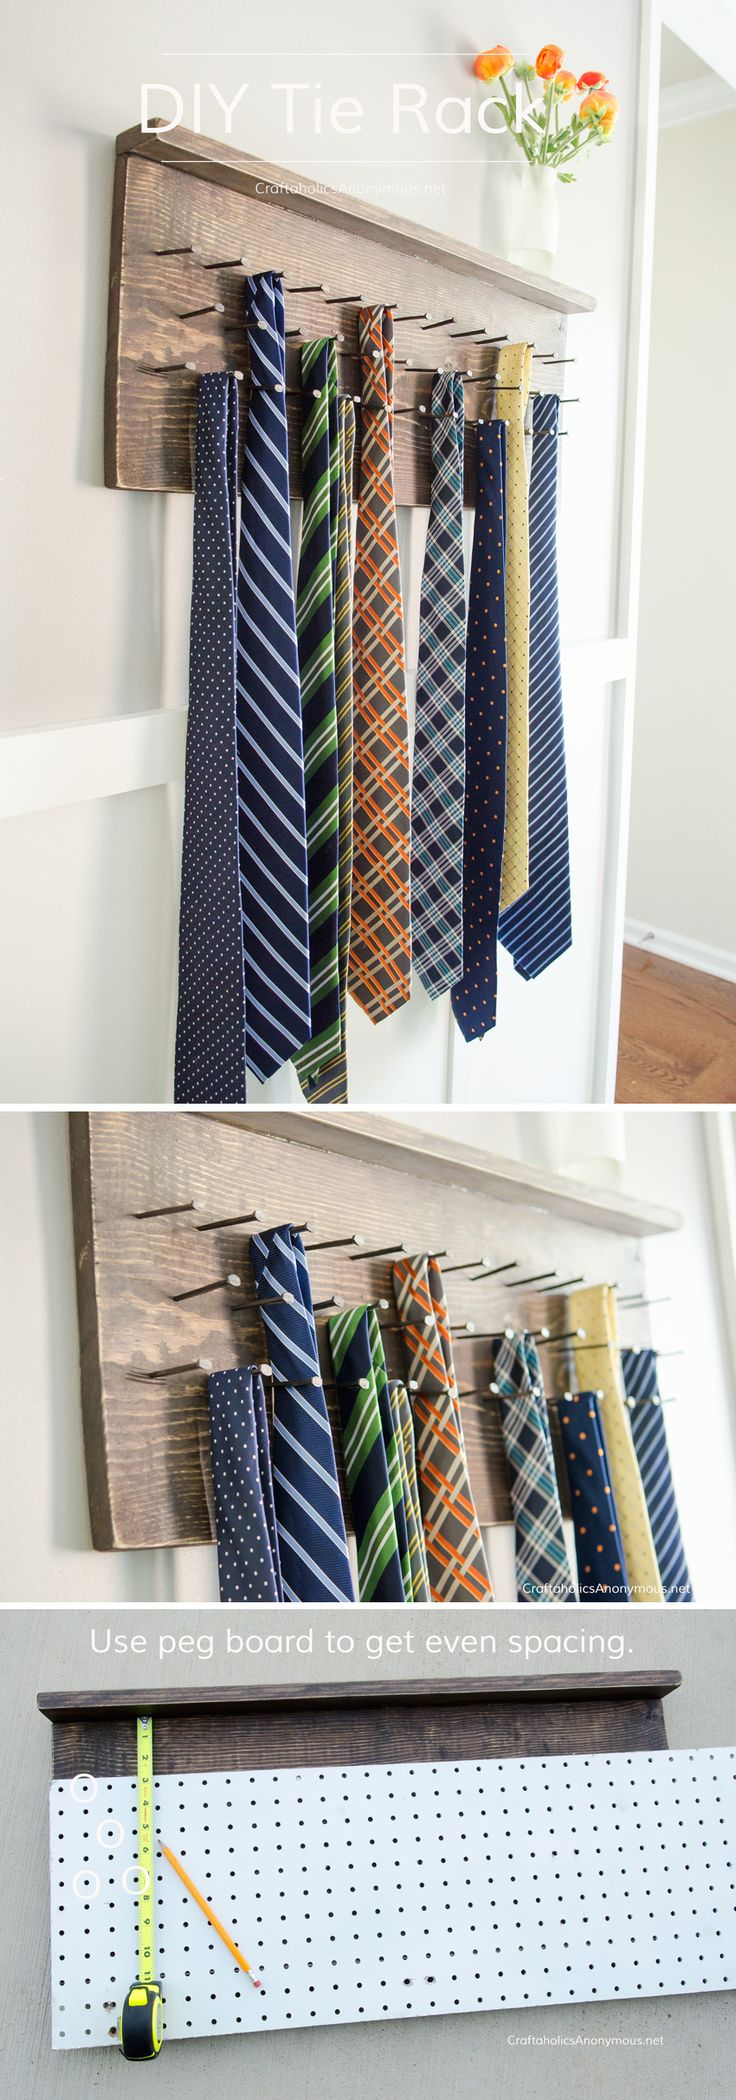 DIY Wood Tie Rack Tutorial || Wouldn't this make a great Father's Day gift? Love the peg board tip.